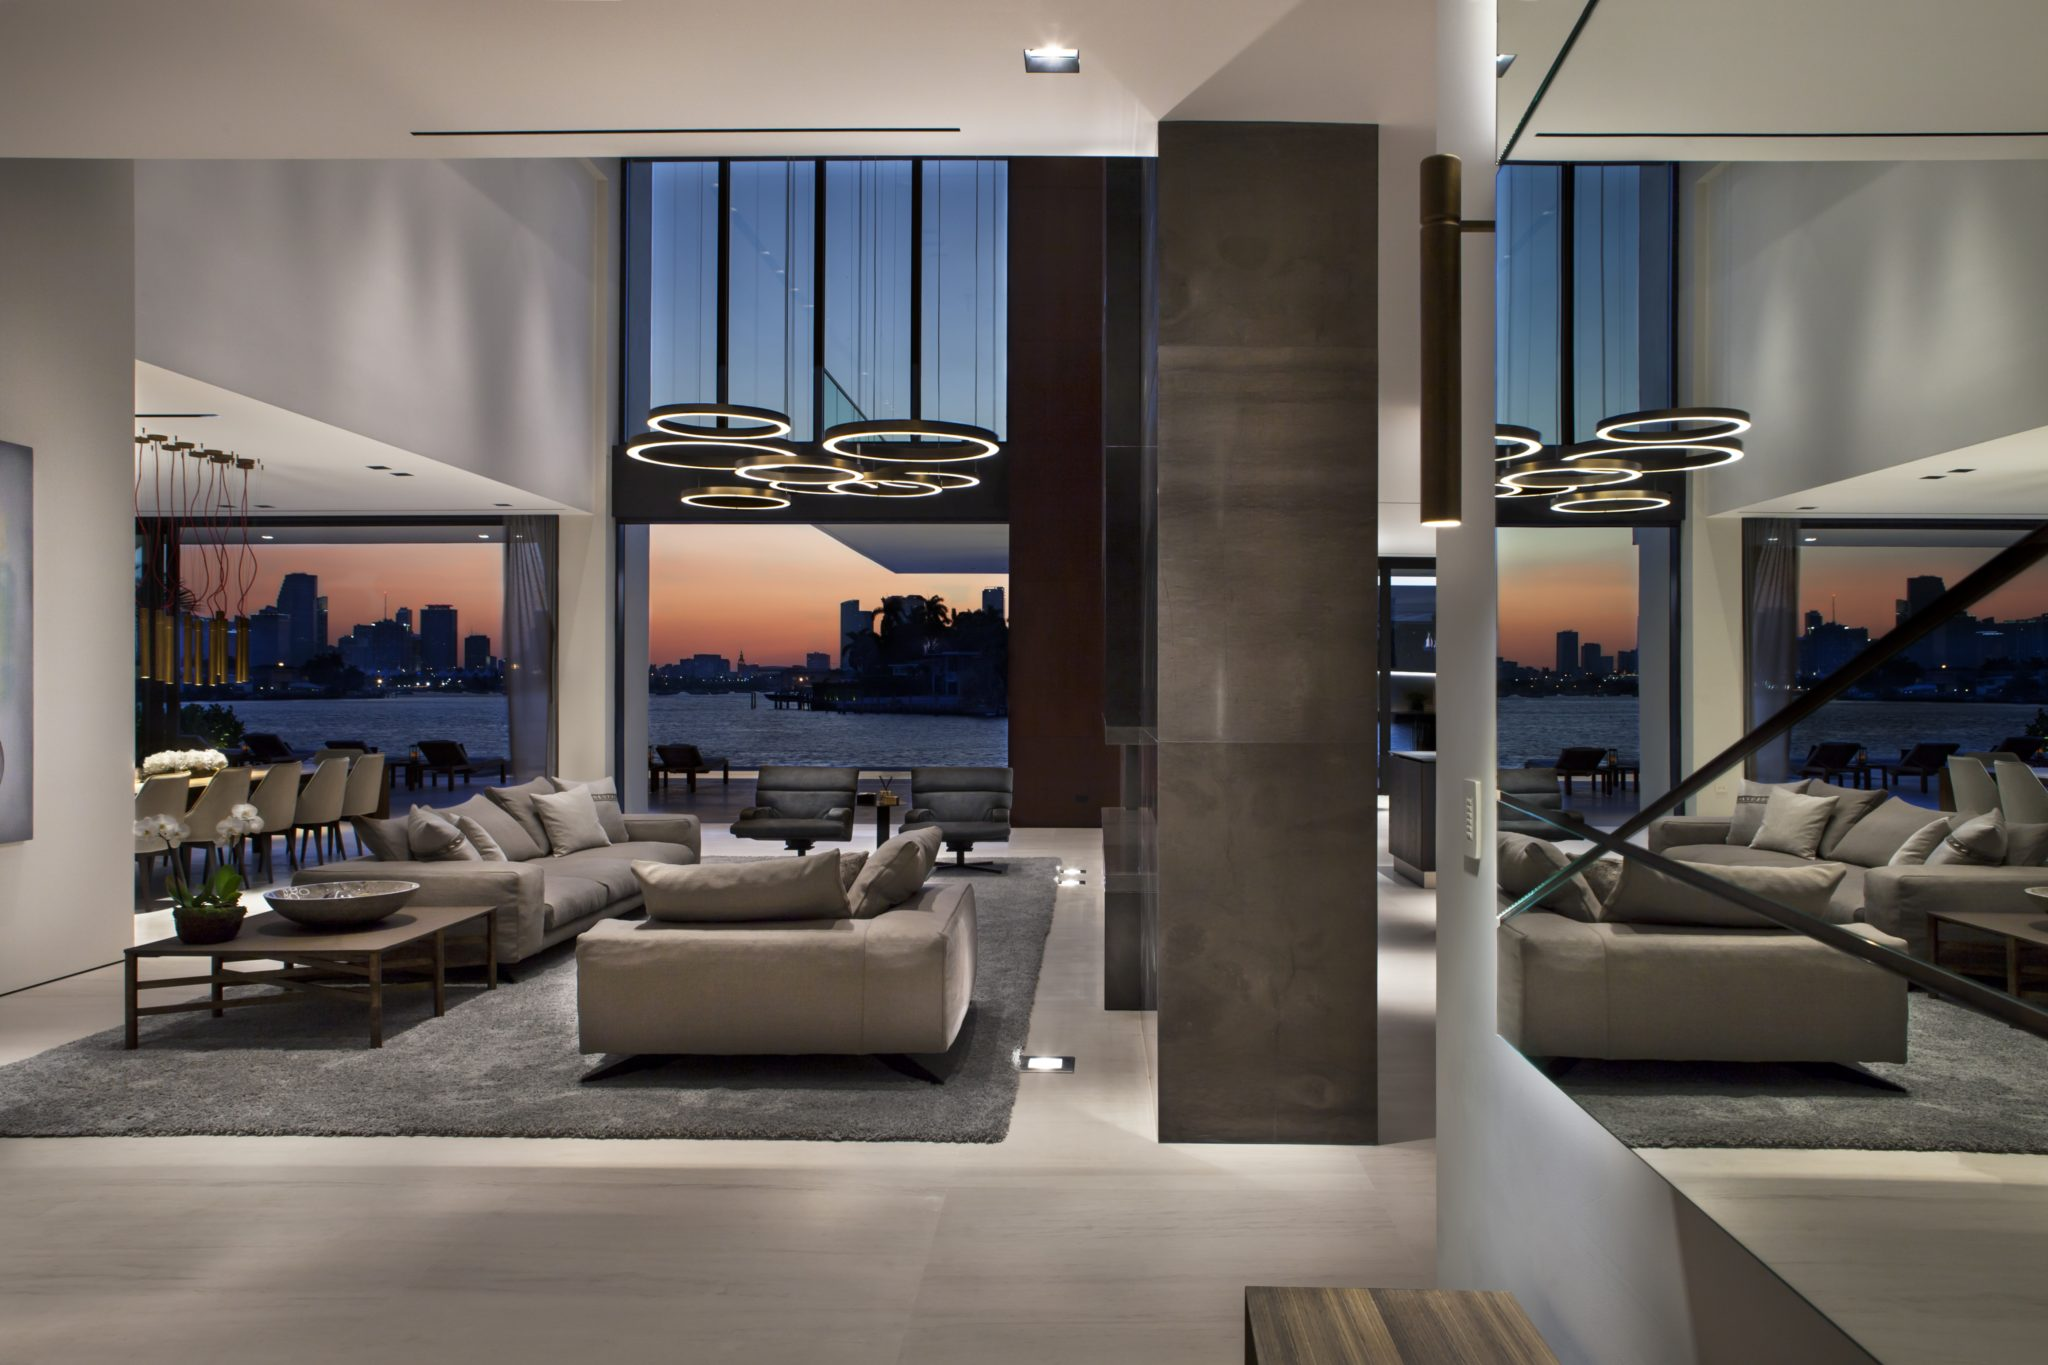 A blend of modern design and materials that create a warm yet elegant home,by Dunagan Diverio Design Group